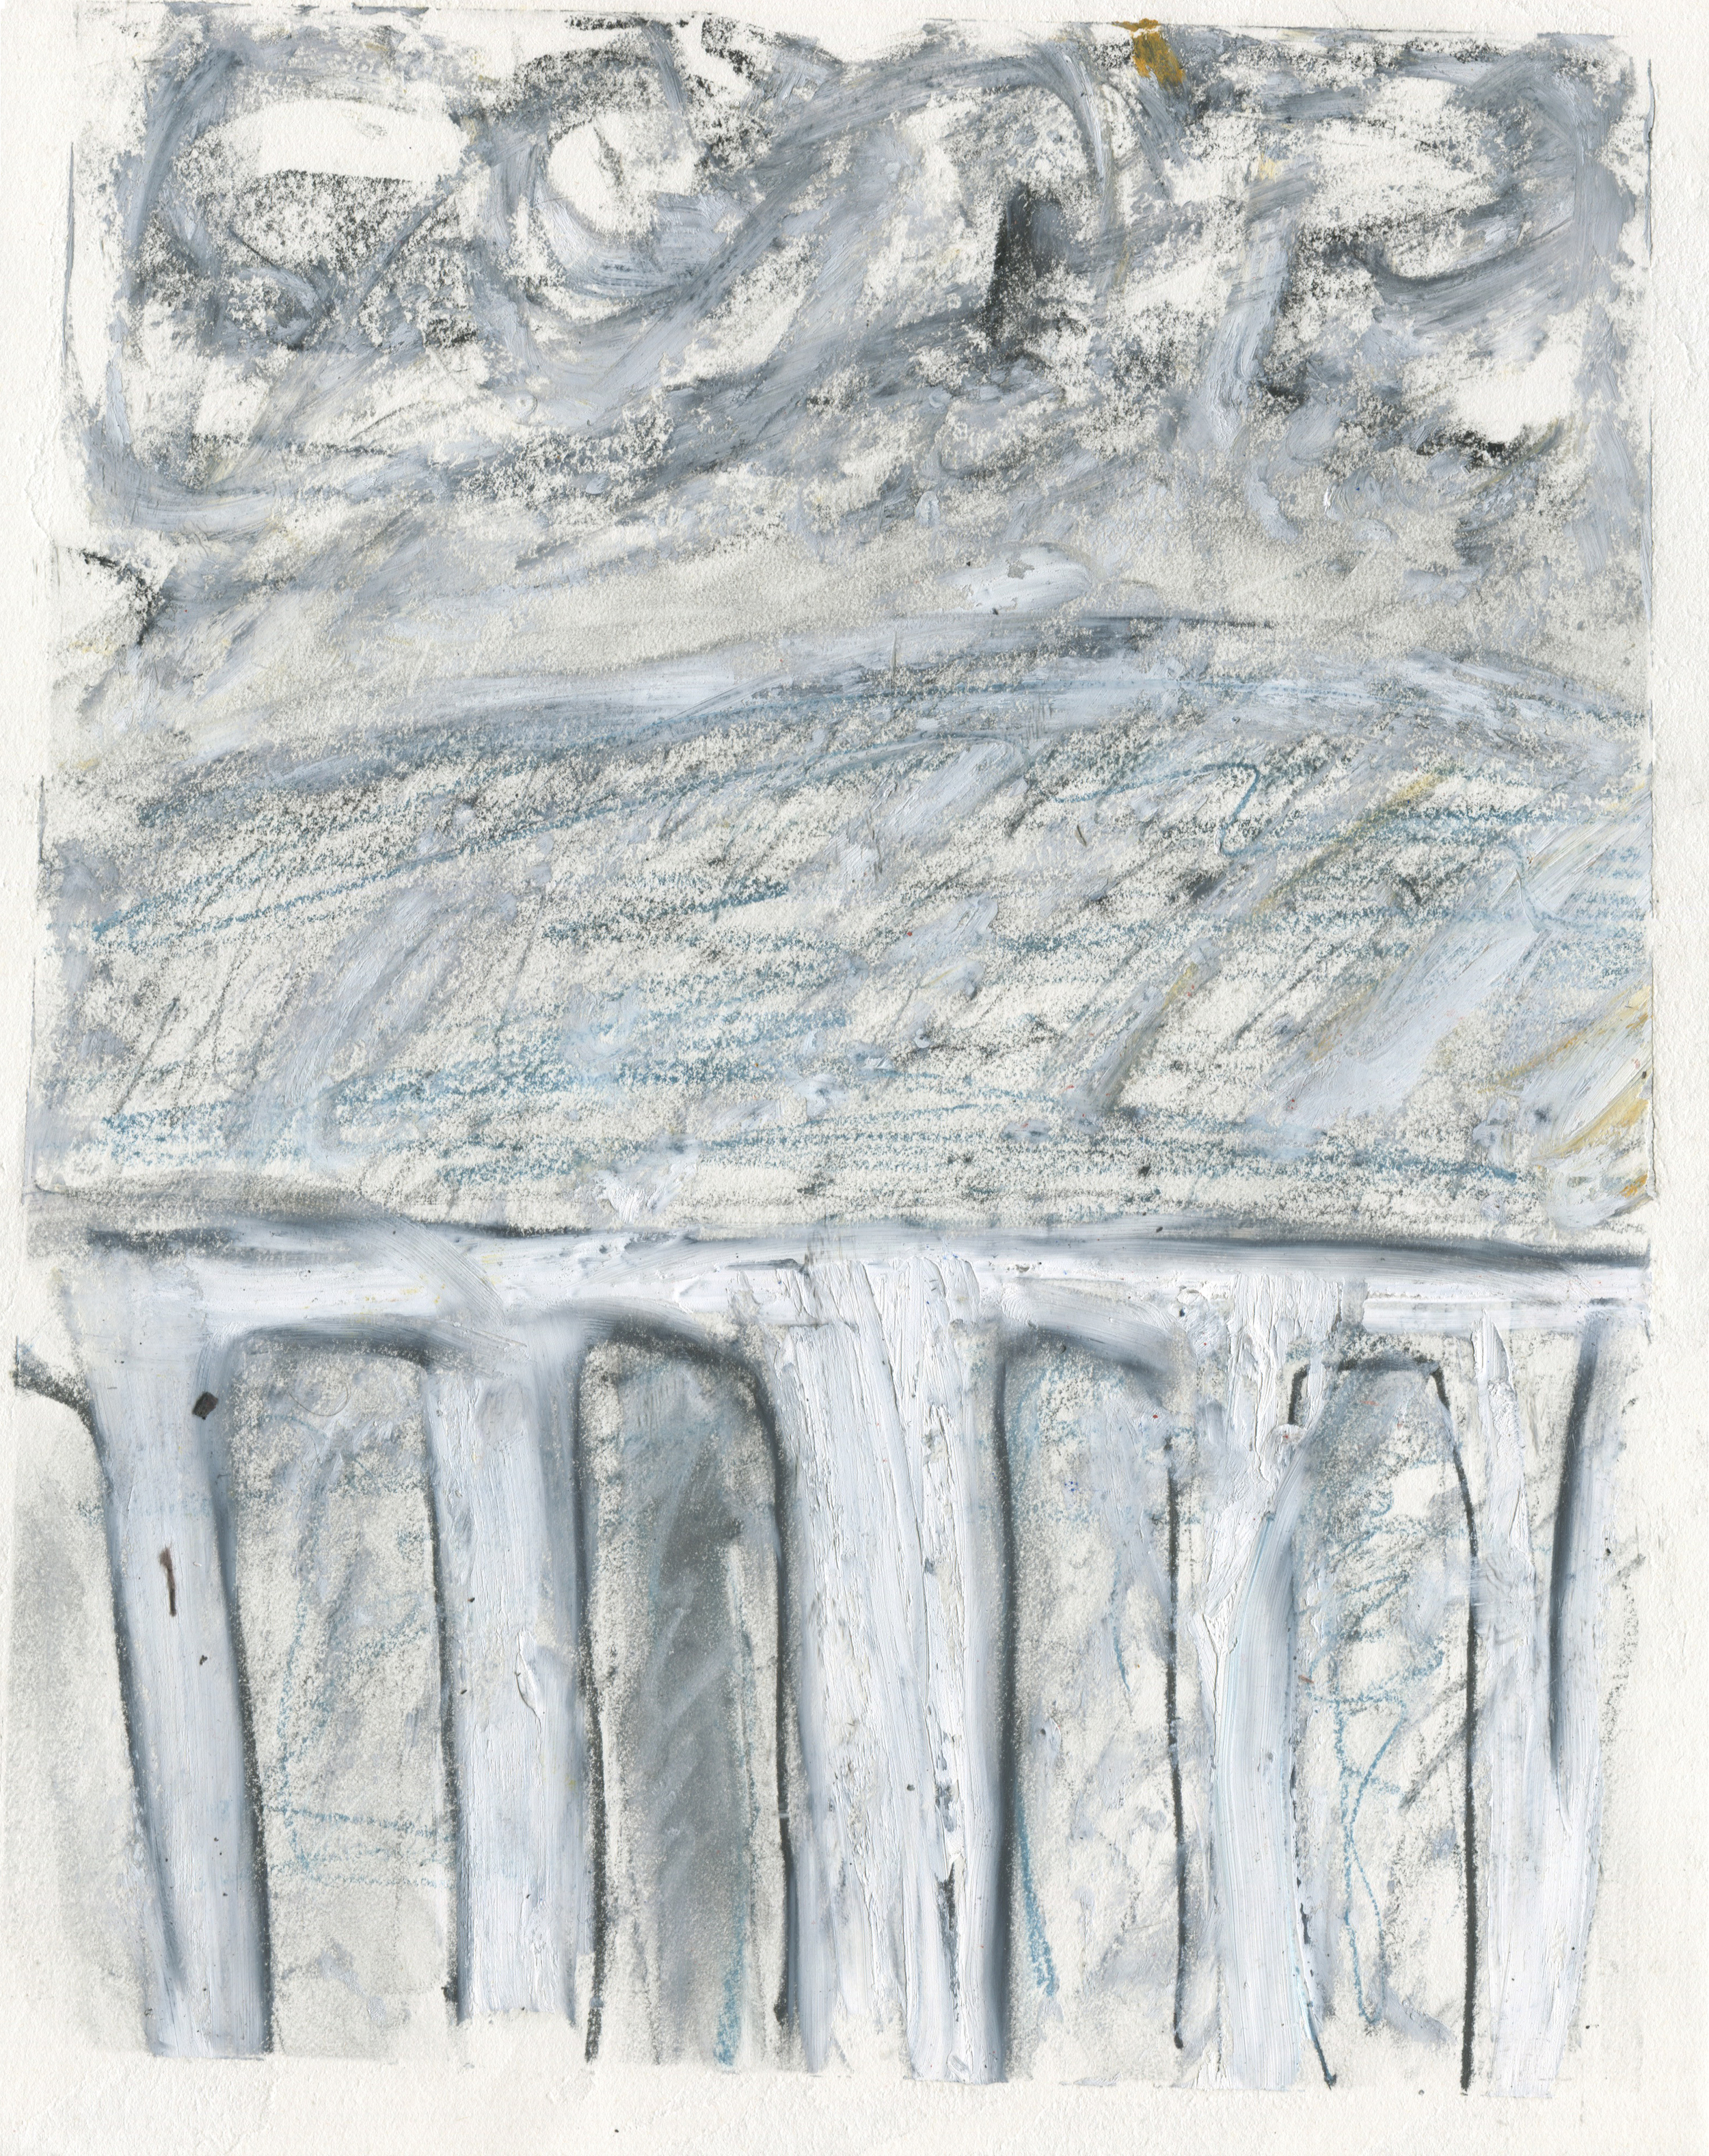 Before Leaving Vacation/Returning to the Fact of the Matter , 2016  14 x 11 inches  Charcoal, Crayon, Chalk Pastel, Graphite and Oil Pastel on Paper